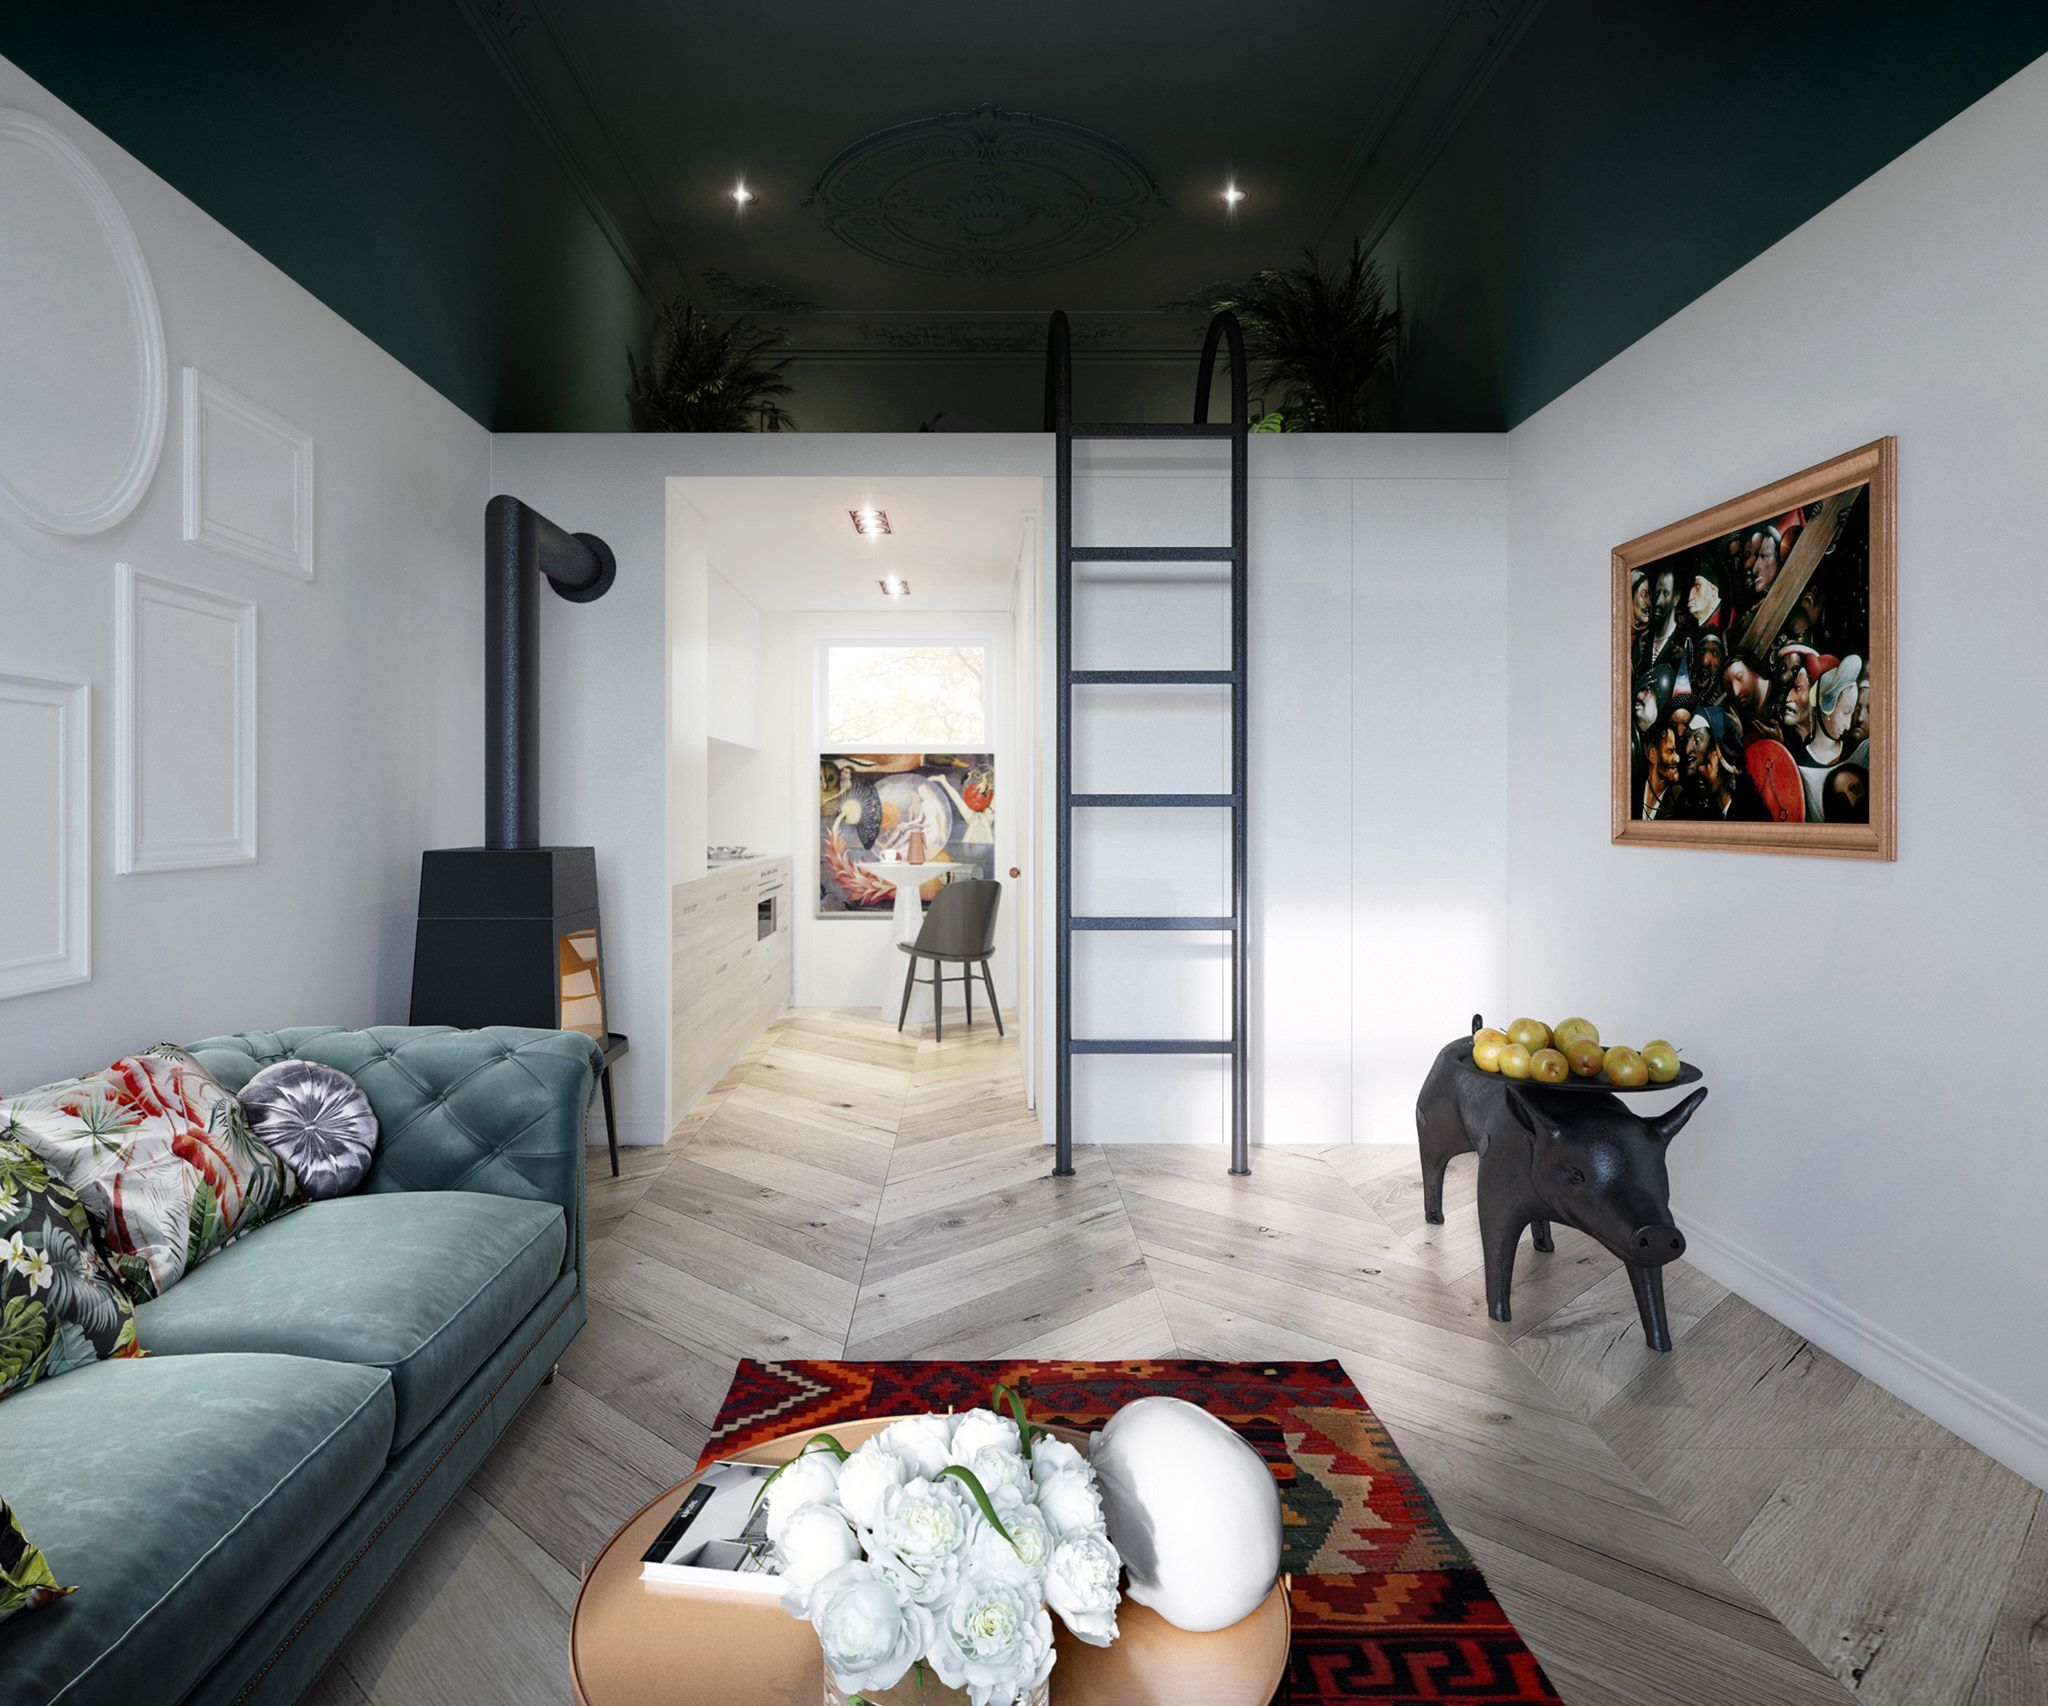 Loft bed ideas for small rooms  Pin by Kasia Lenart on Interiors  Pinterest  Interiors